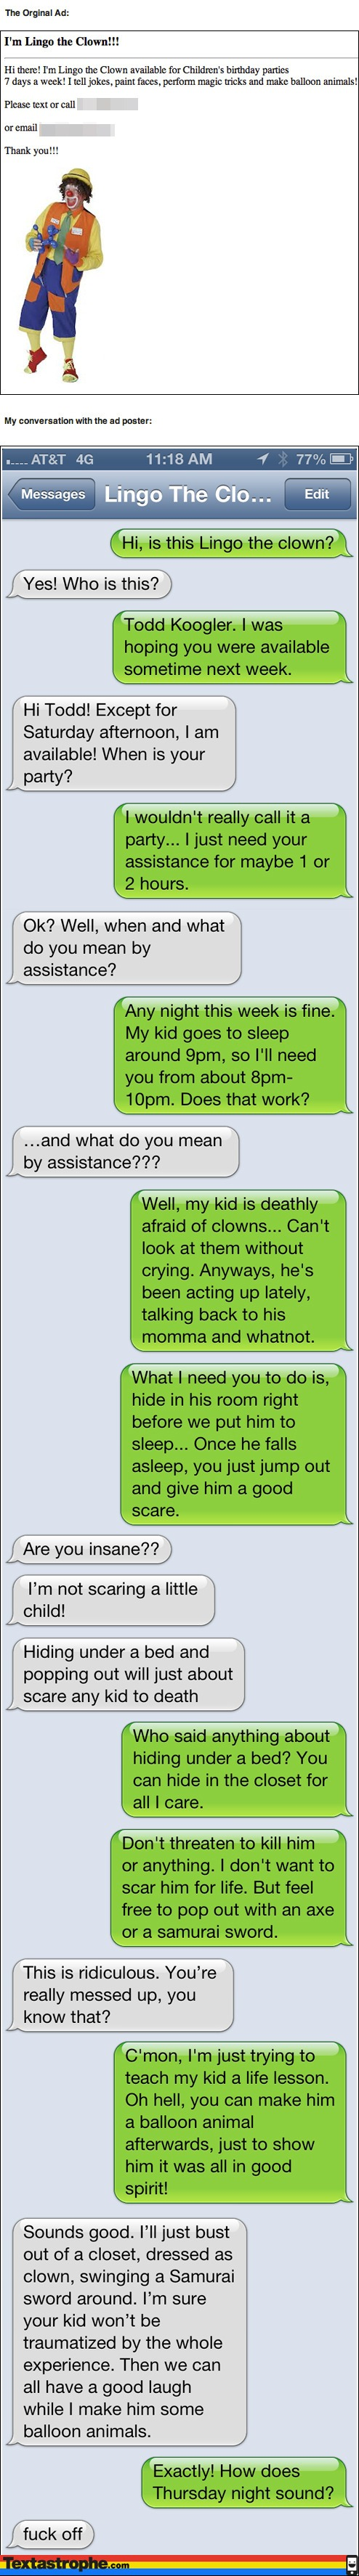 The 10 funniest text message pranks ever sent